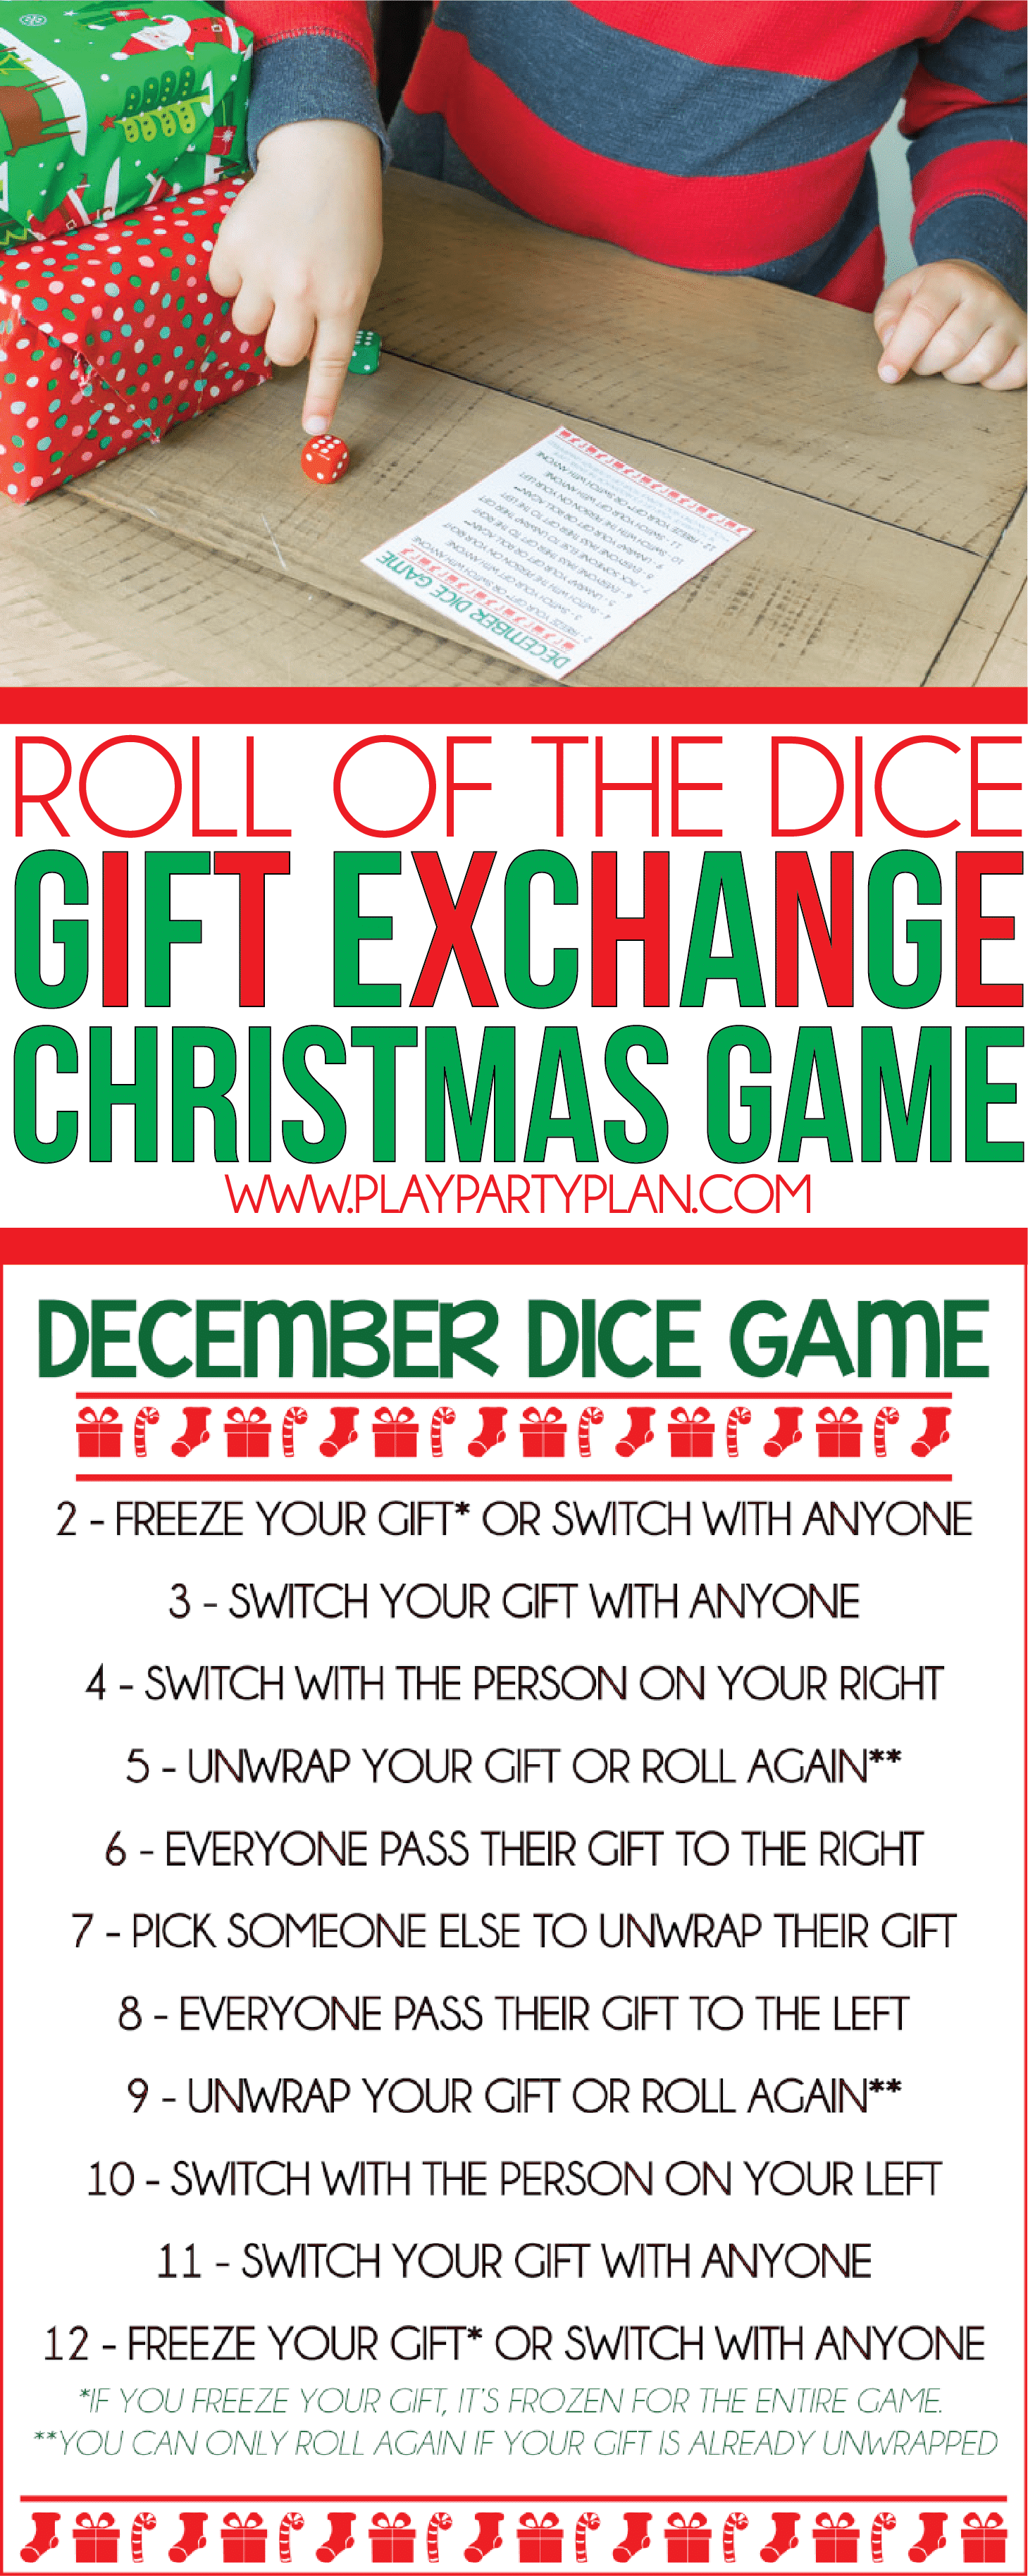 Christmas gift game gift ideas